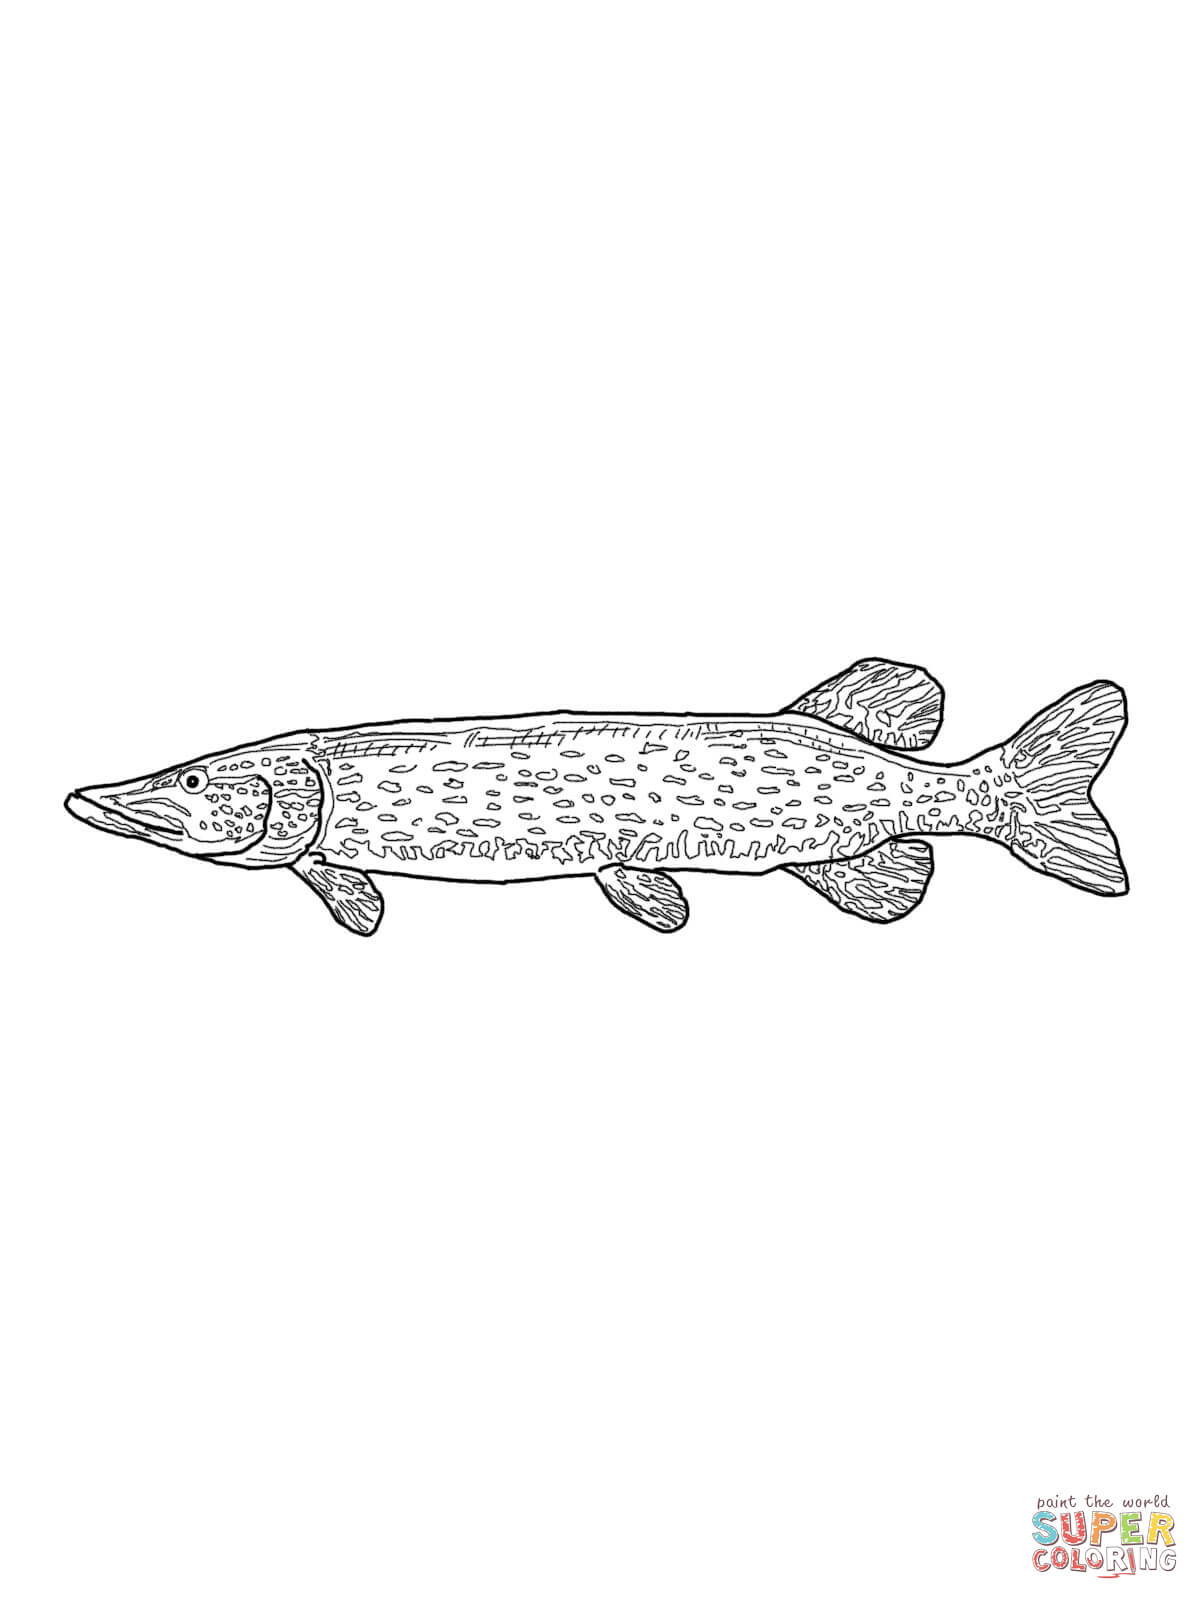 Northern Pike coloring #3, Download drawings